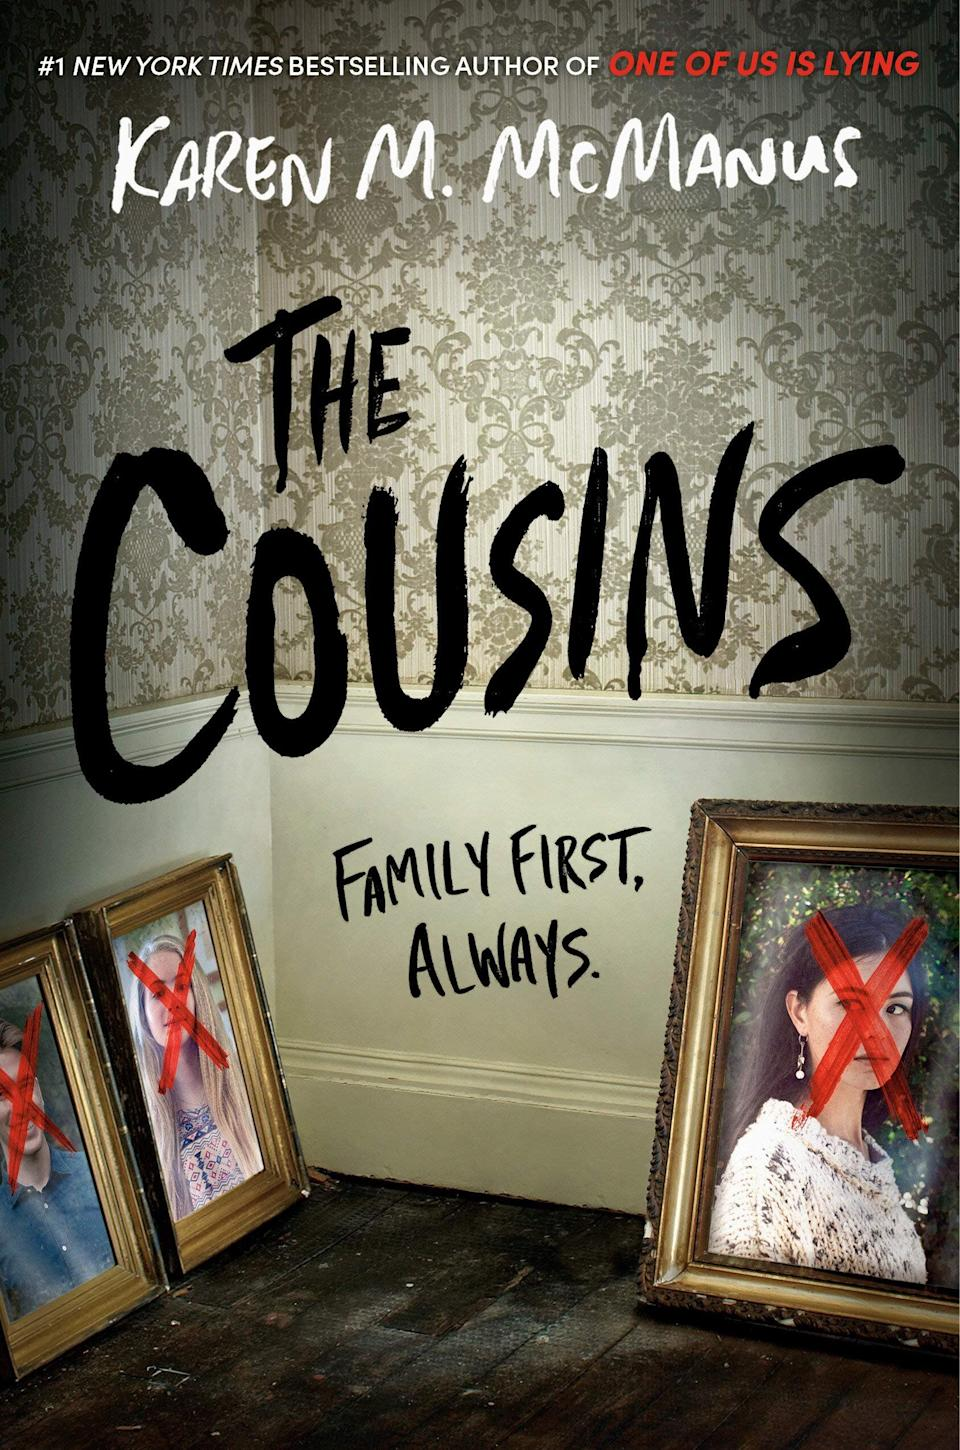 """Milly, Aubrey and Jonah are cousins, but mostly strangers. But when their rich, reclusive grandmother (whom they've also never met) invites them to work at her island resort for the summer, their parents urge them to go and restore familial bonds. When the cousins arrive however, they find out that their shared family past has a lot more dark secrets than they originally thought. Read more about it on <a href=""""https://www.goodreads.com/book/show/49757149-the-cousins"""">Goodreads</a>, and grab a copy on <a href=""""https://amzn.to/2JCOivB"""">Amazon</a> or <a href=""""https://fave.co/3mu7b2r"""">Bookshop</a>.<br /><br /><i>Expected release date:</i> <i>December 1</i>"""